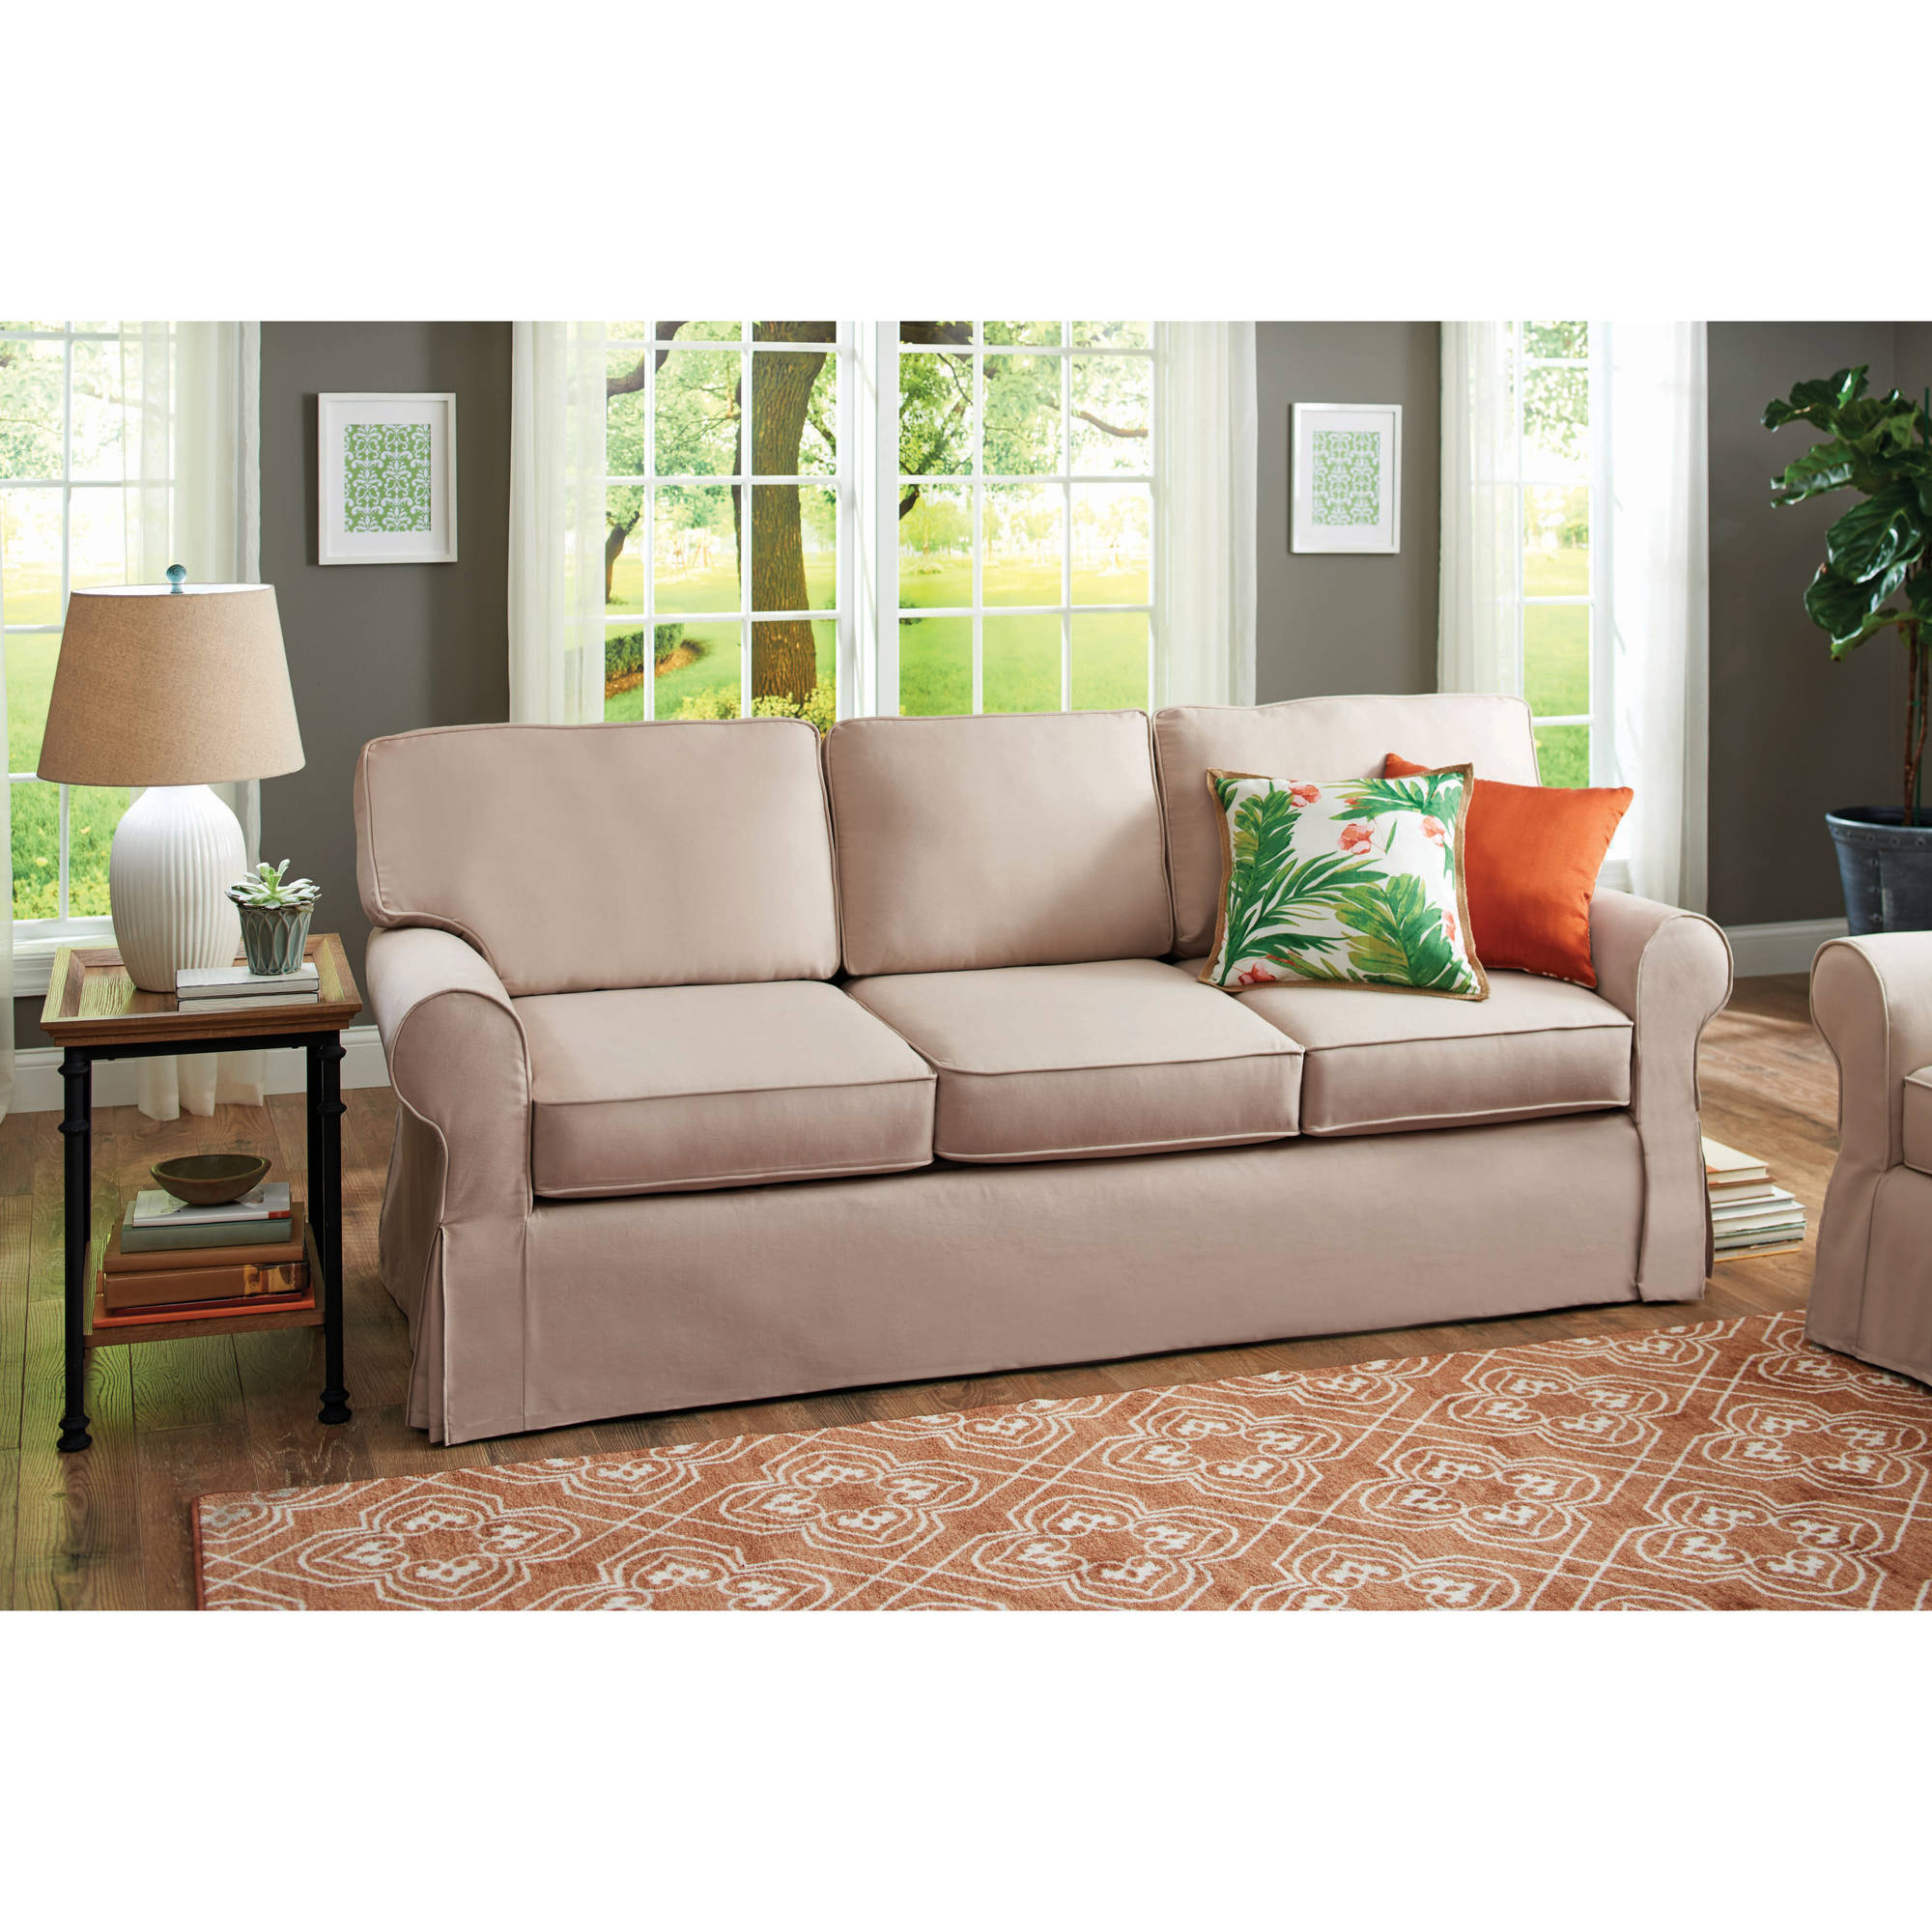 Ashley Daystar Fabric Sofa with Cushions in Seafoam Walmart